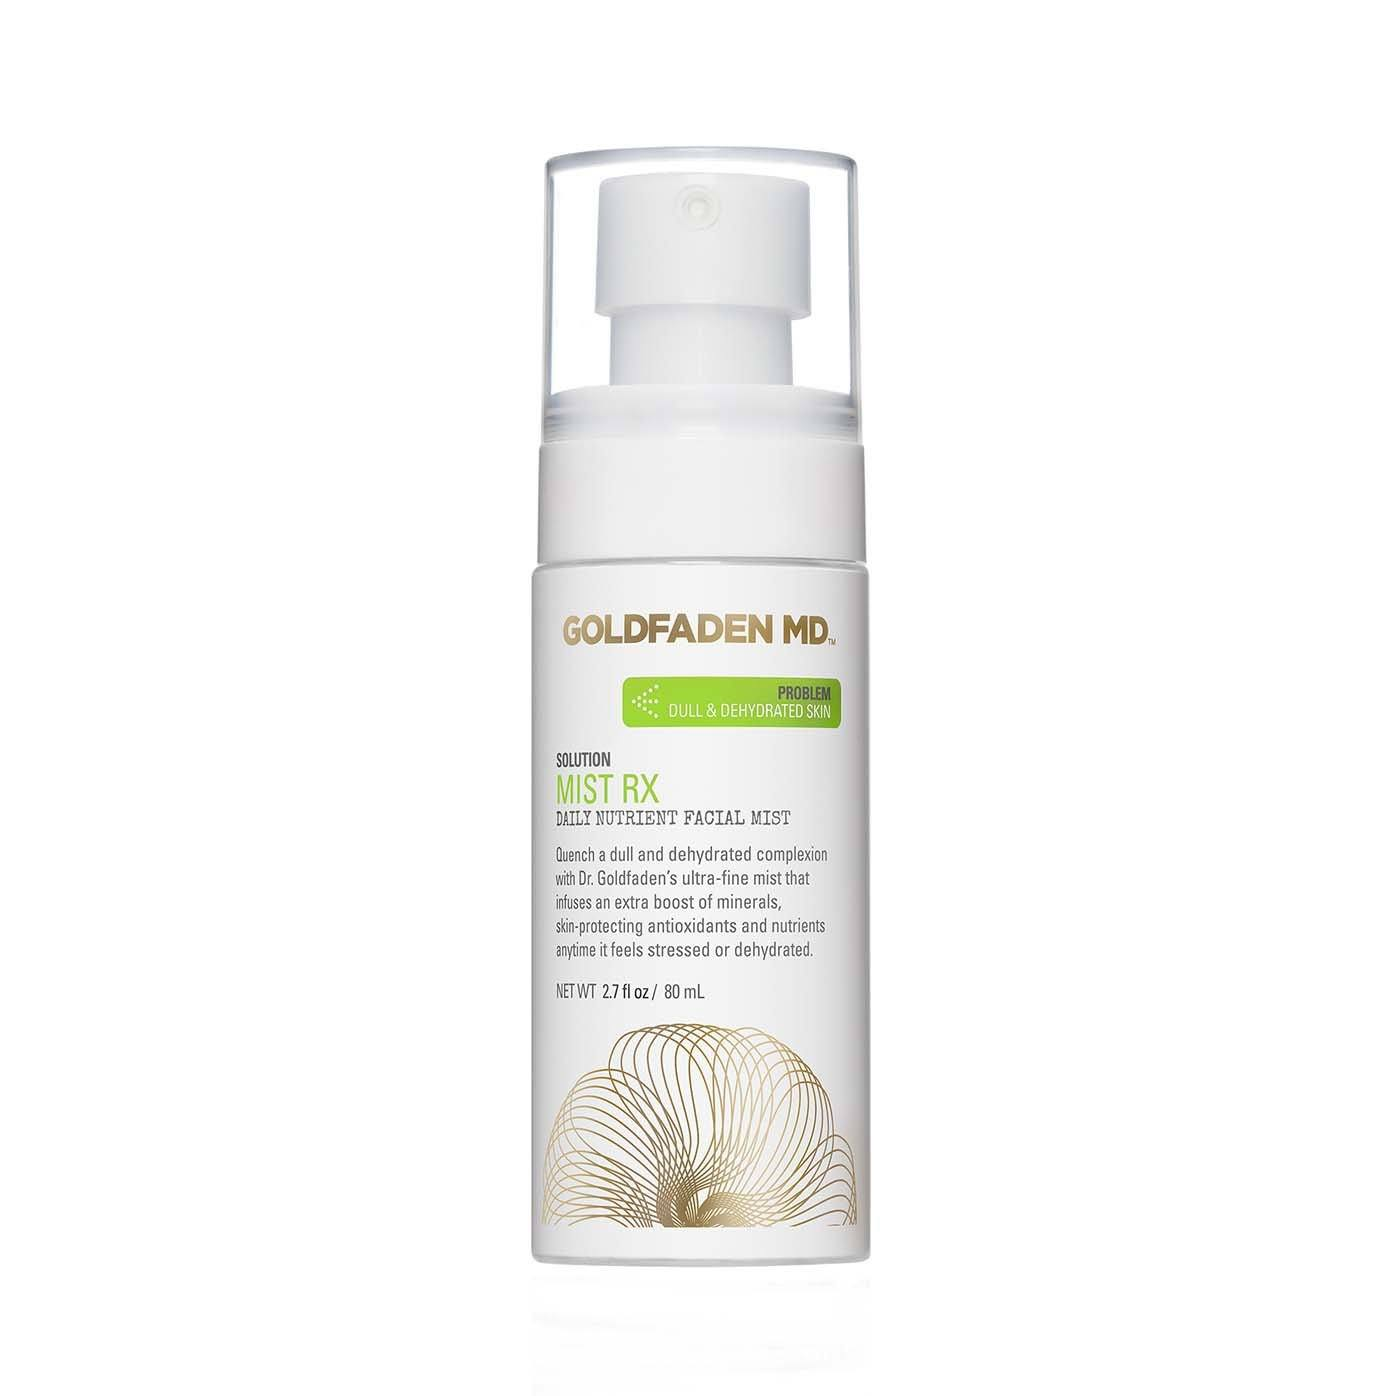 Mist RX Daily Nutrient Facial Mist